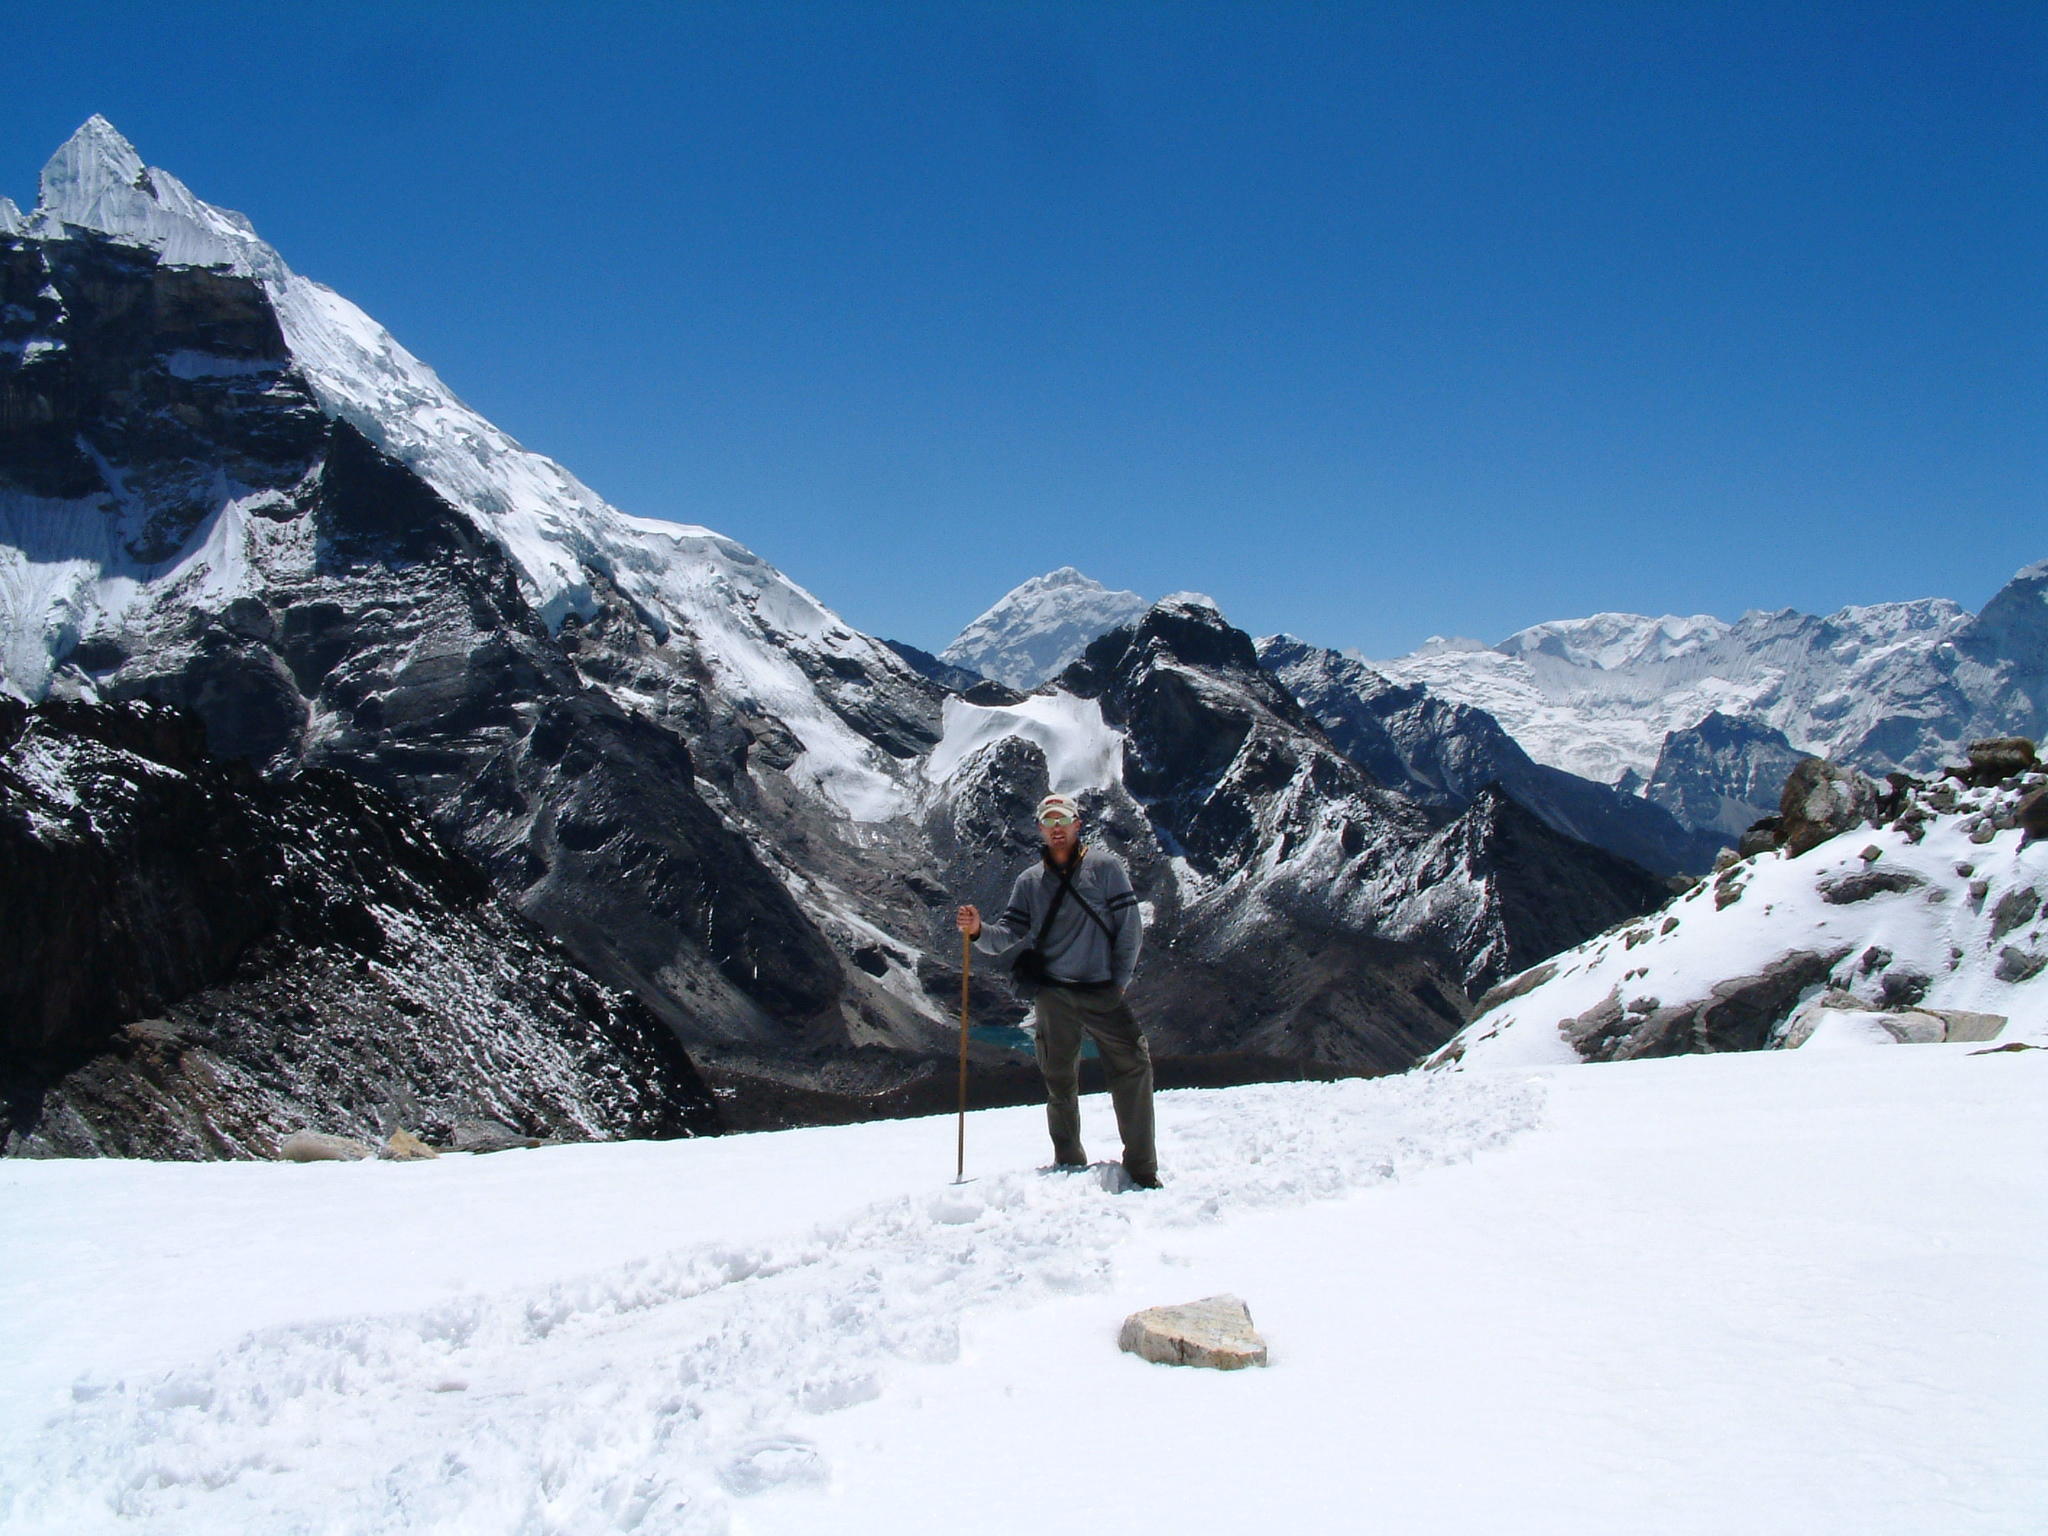 Trekking in nepal - annapurna circuit and mount everest base camp